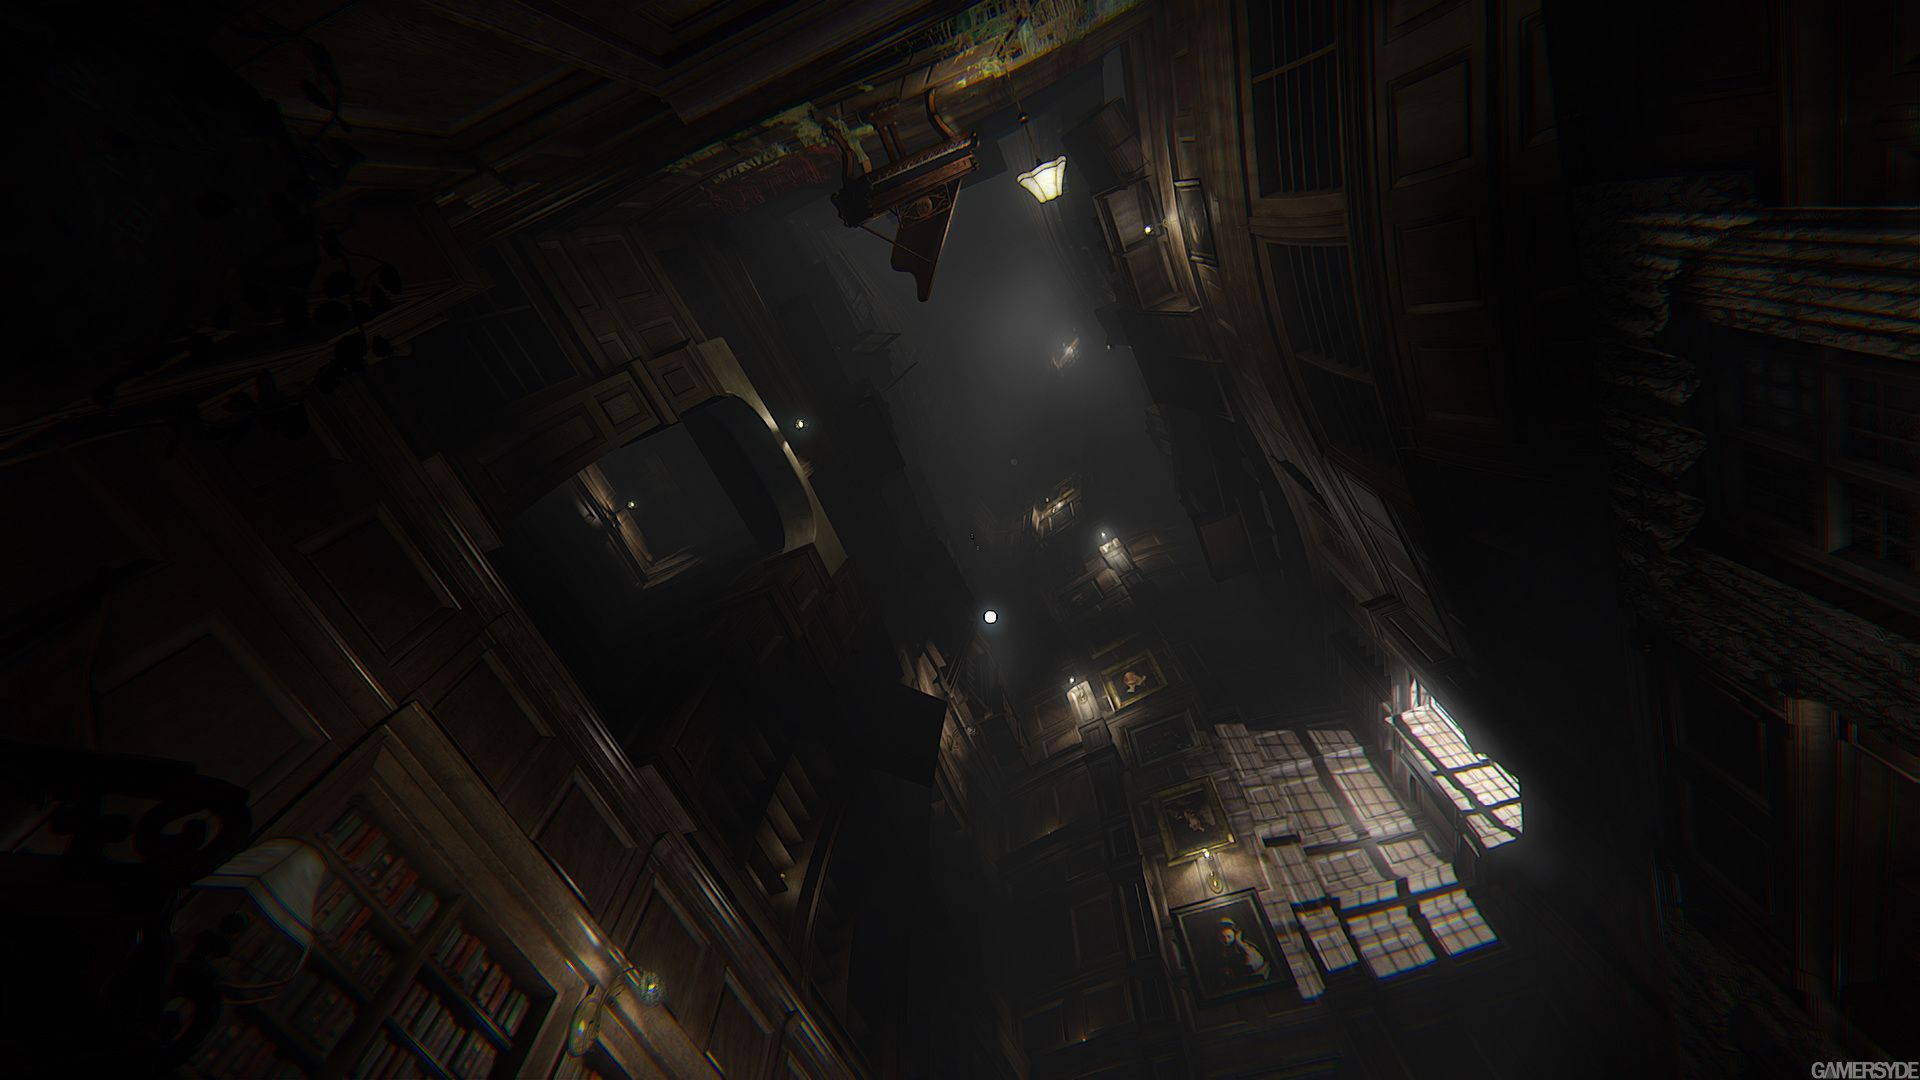 image_layers_of_fear-29222-3349_0012.jpg (1920×1080)